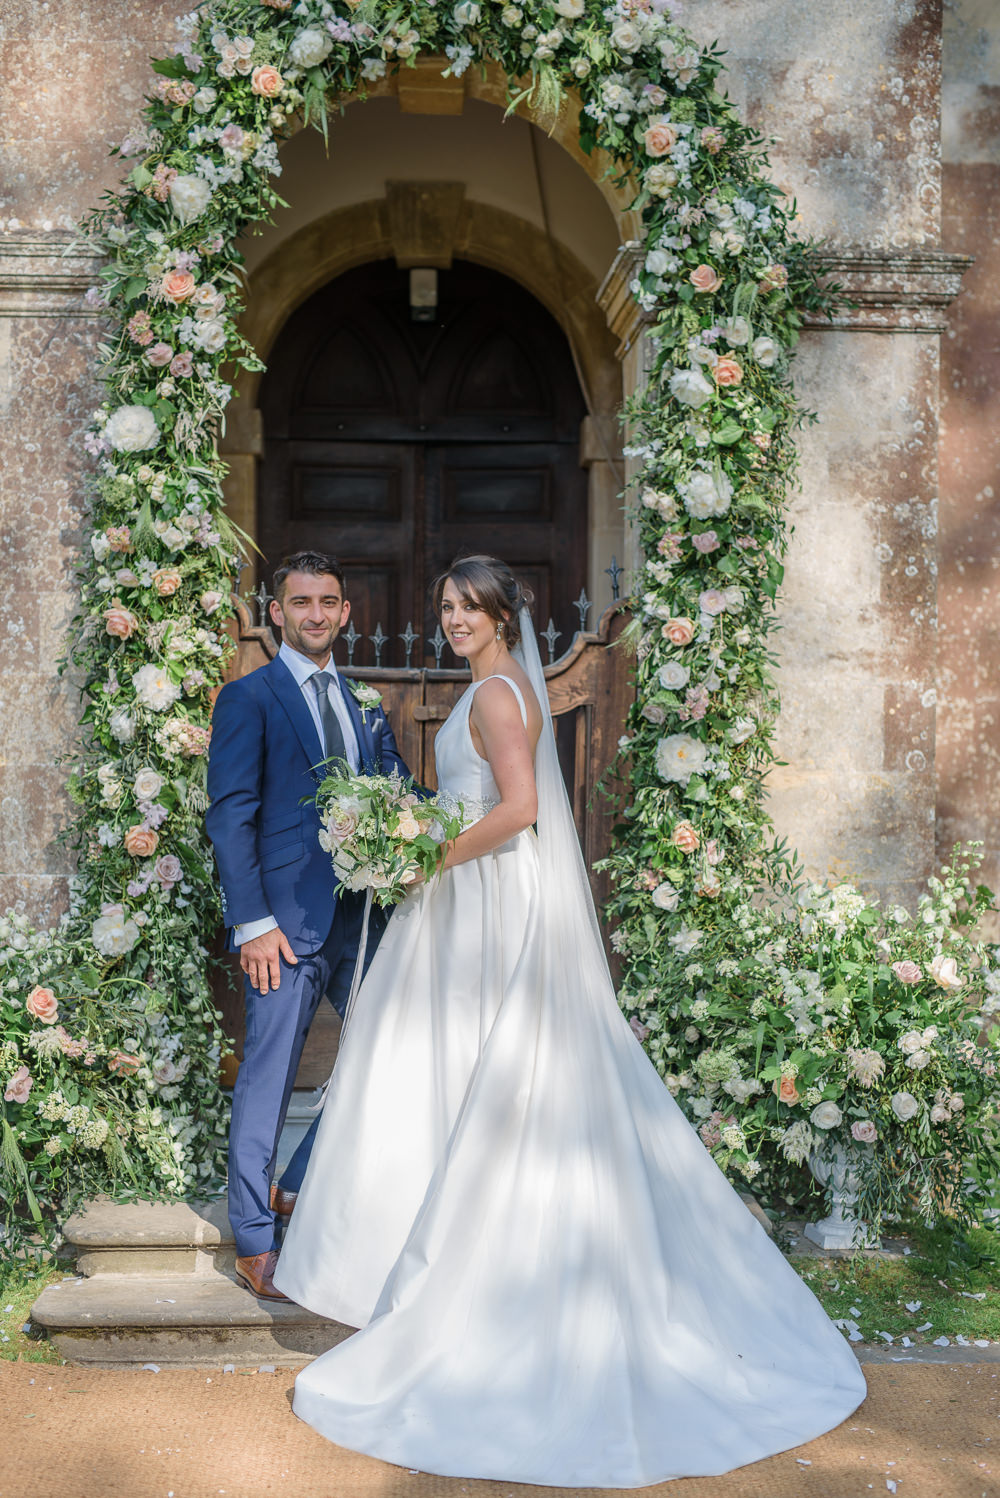 Floral Archway Entrance Bride Bridal A Line Dress Straps Sleeveless Silk V Neck Blue Suit Groom Veil Babington House Wedding Ria Mishaal Photography